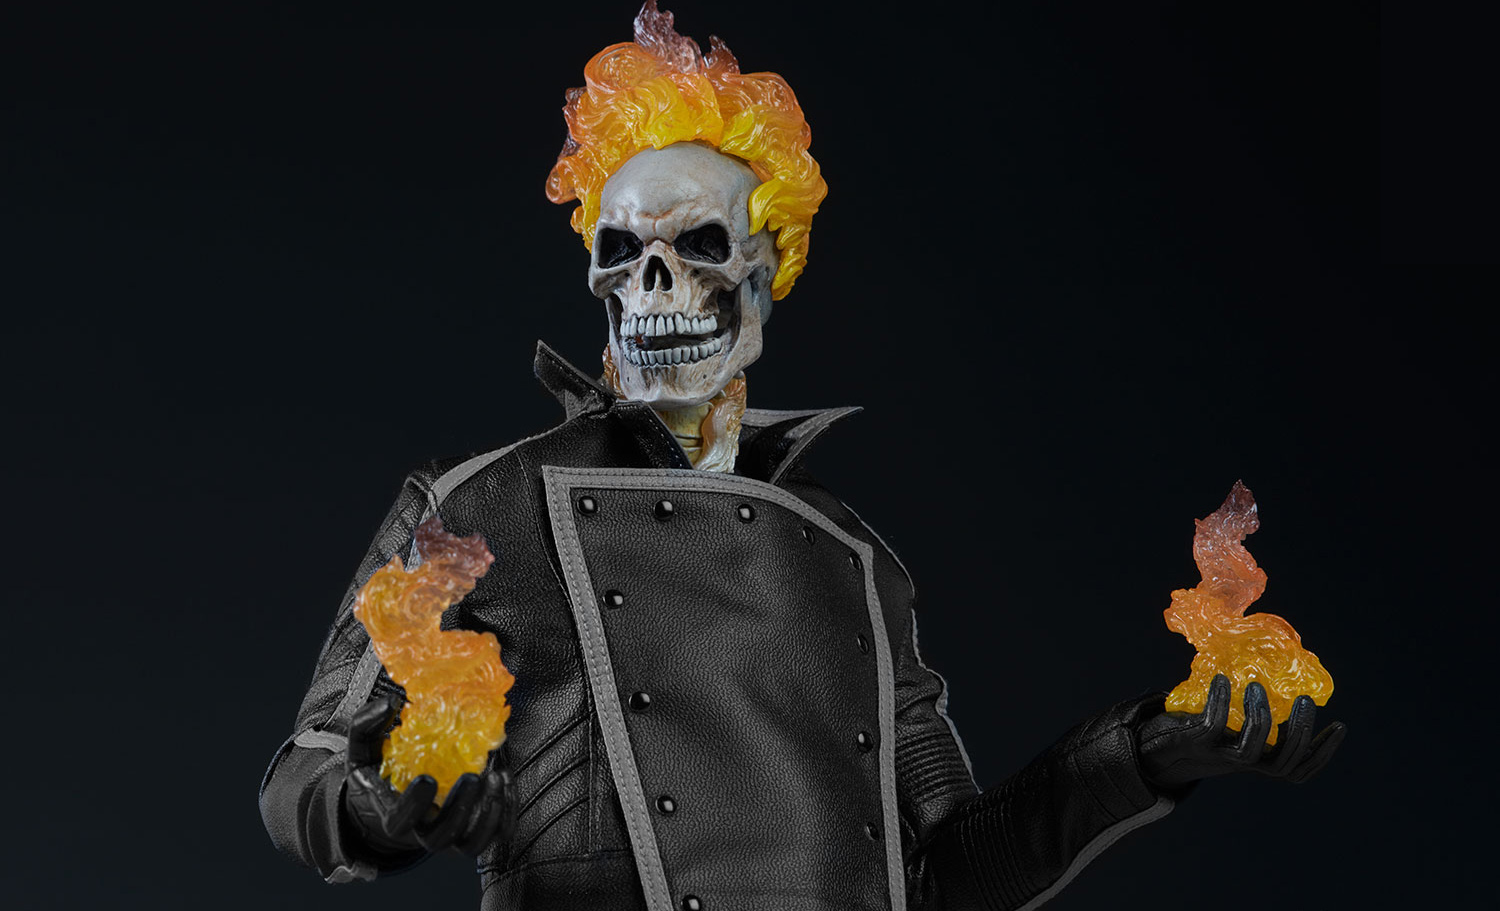 Sideshow exclusive ghost rider sixth scale figure up for order sideshow collectibles exclusive ghost rider figure with hellfire hands solutioingenieria Gallery